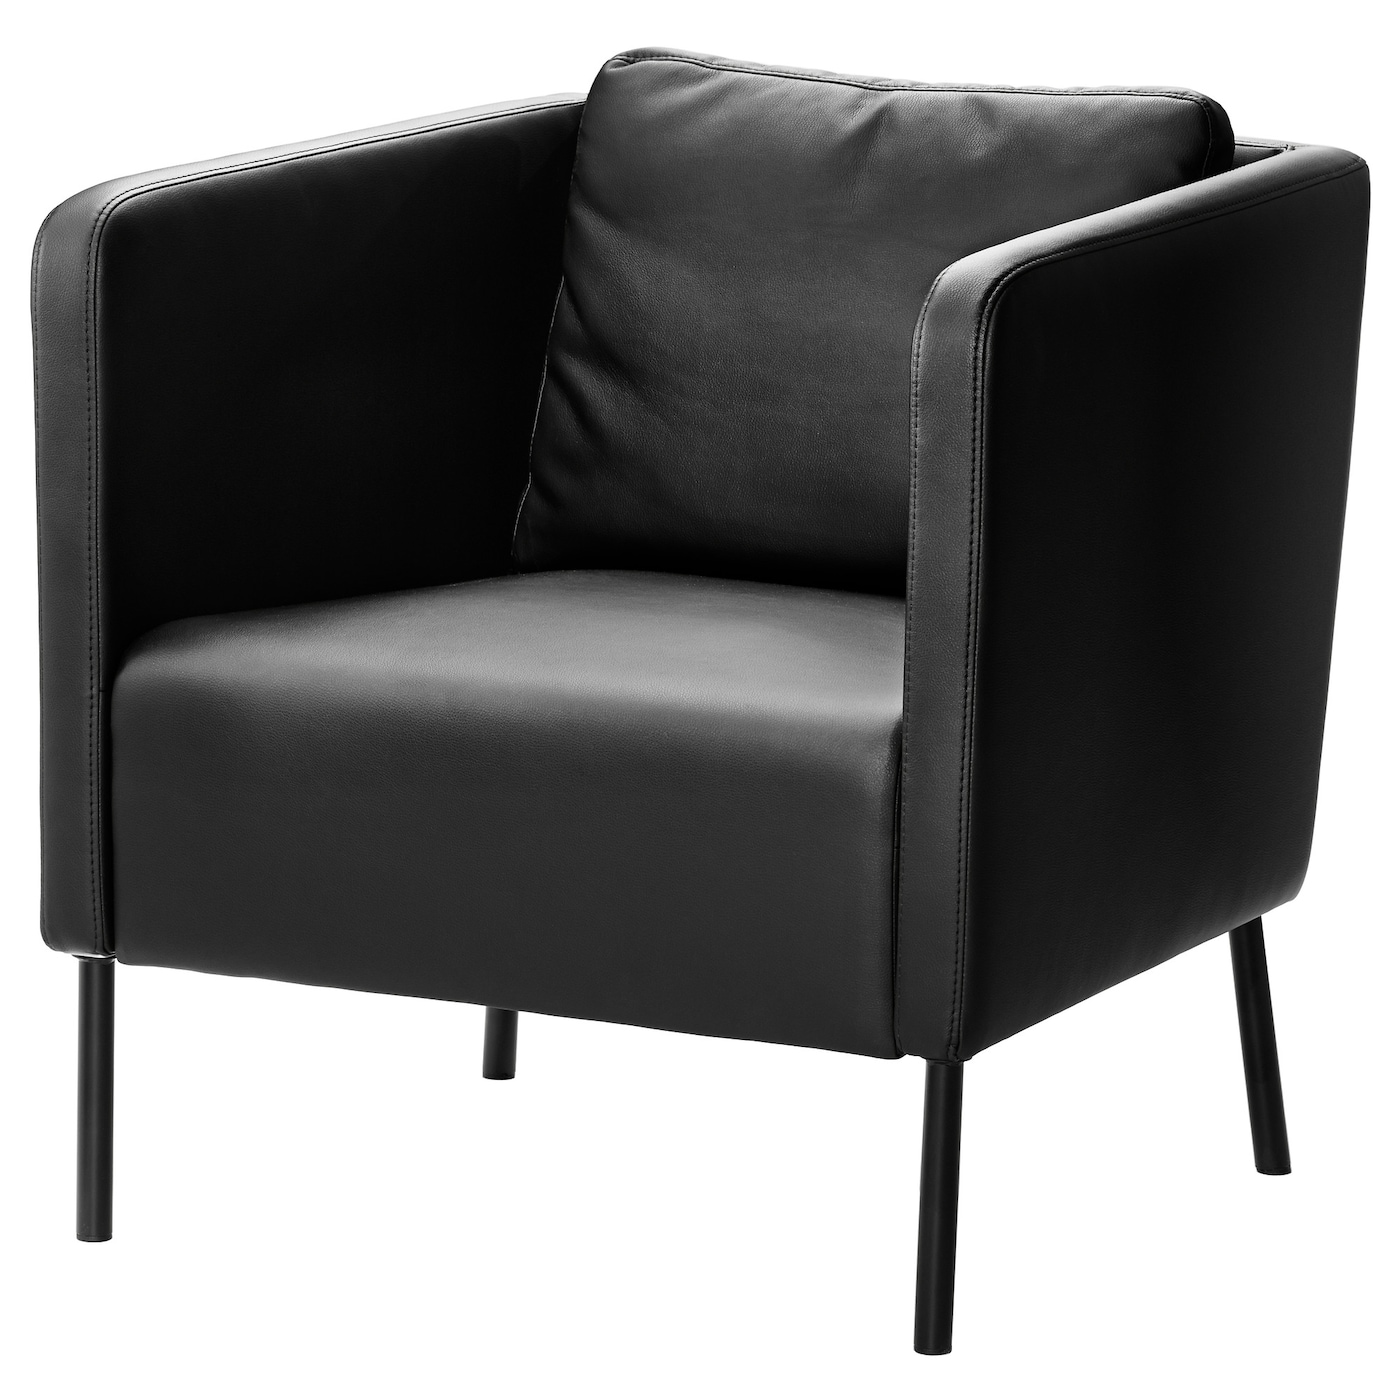 office couch ikea. IKEA EKERÖ Armchair The Cover Is Easy To Keep Clean As It Can Be Wiped Office Couch Ikea R